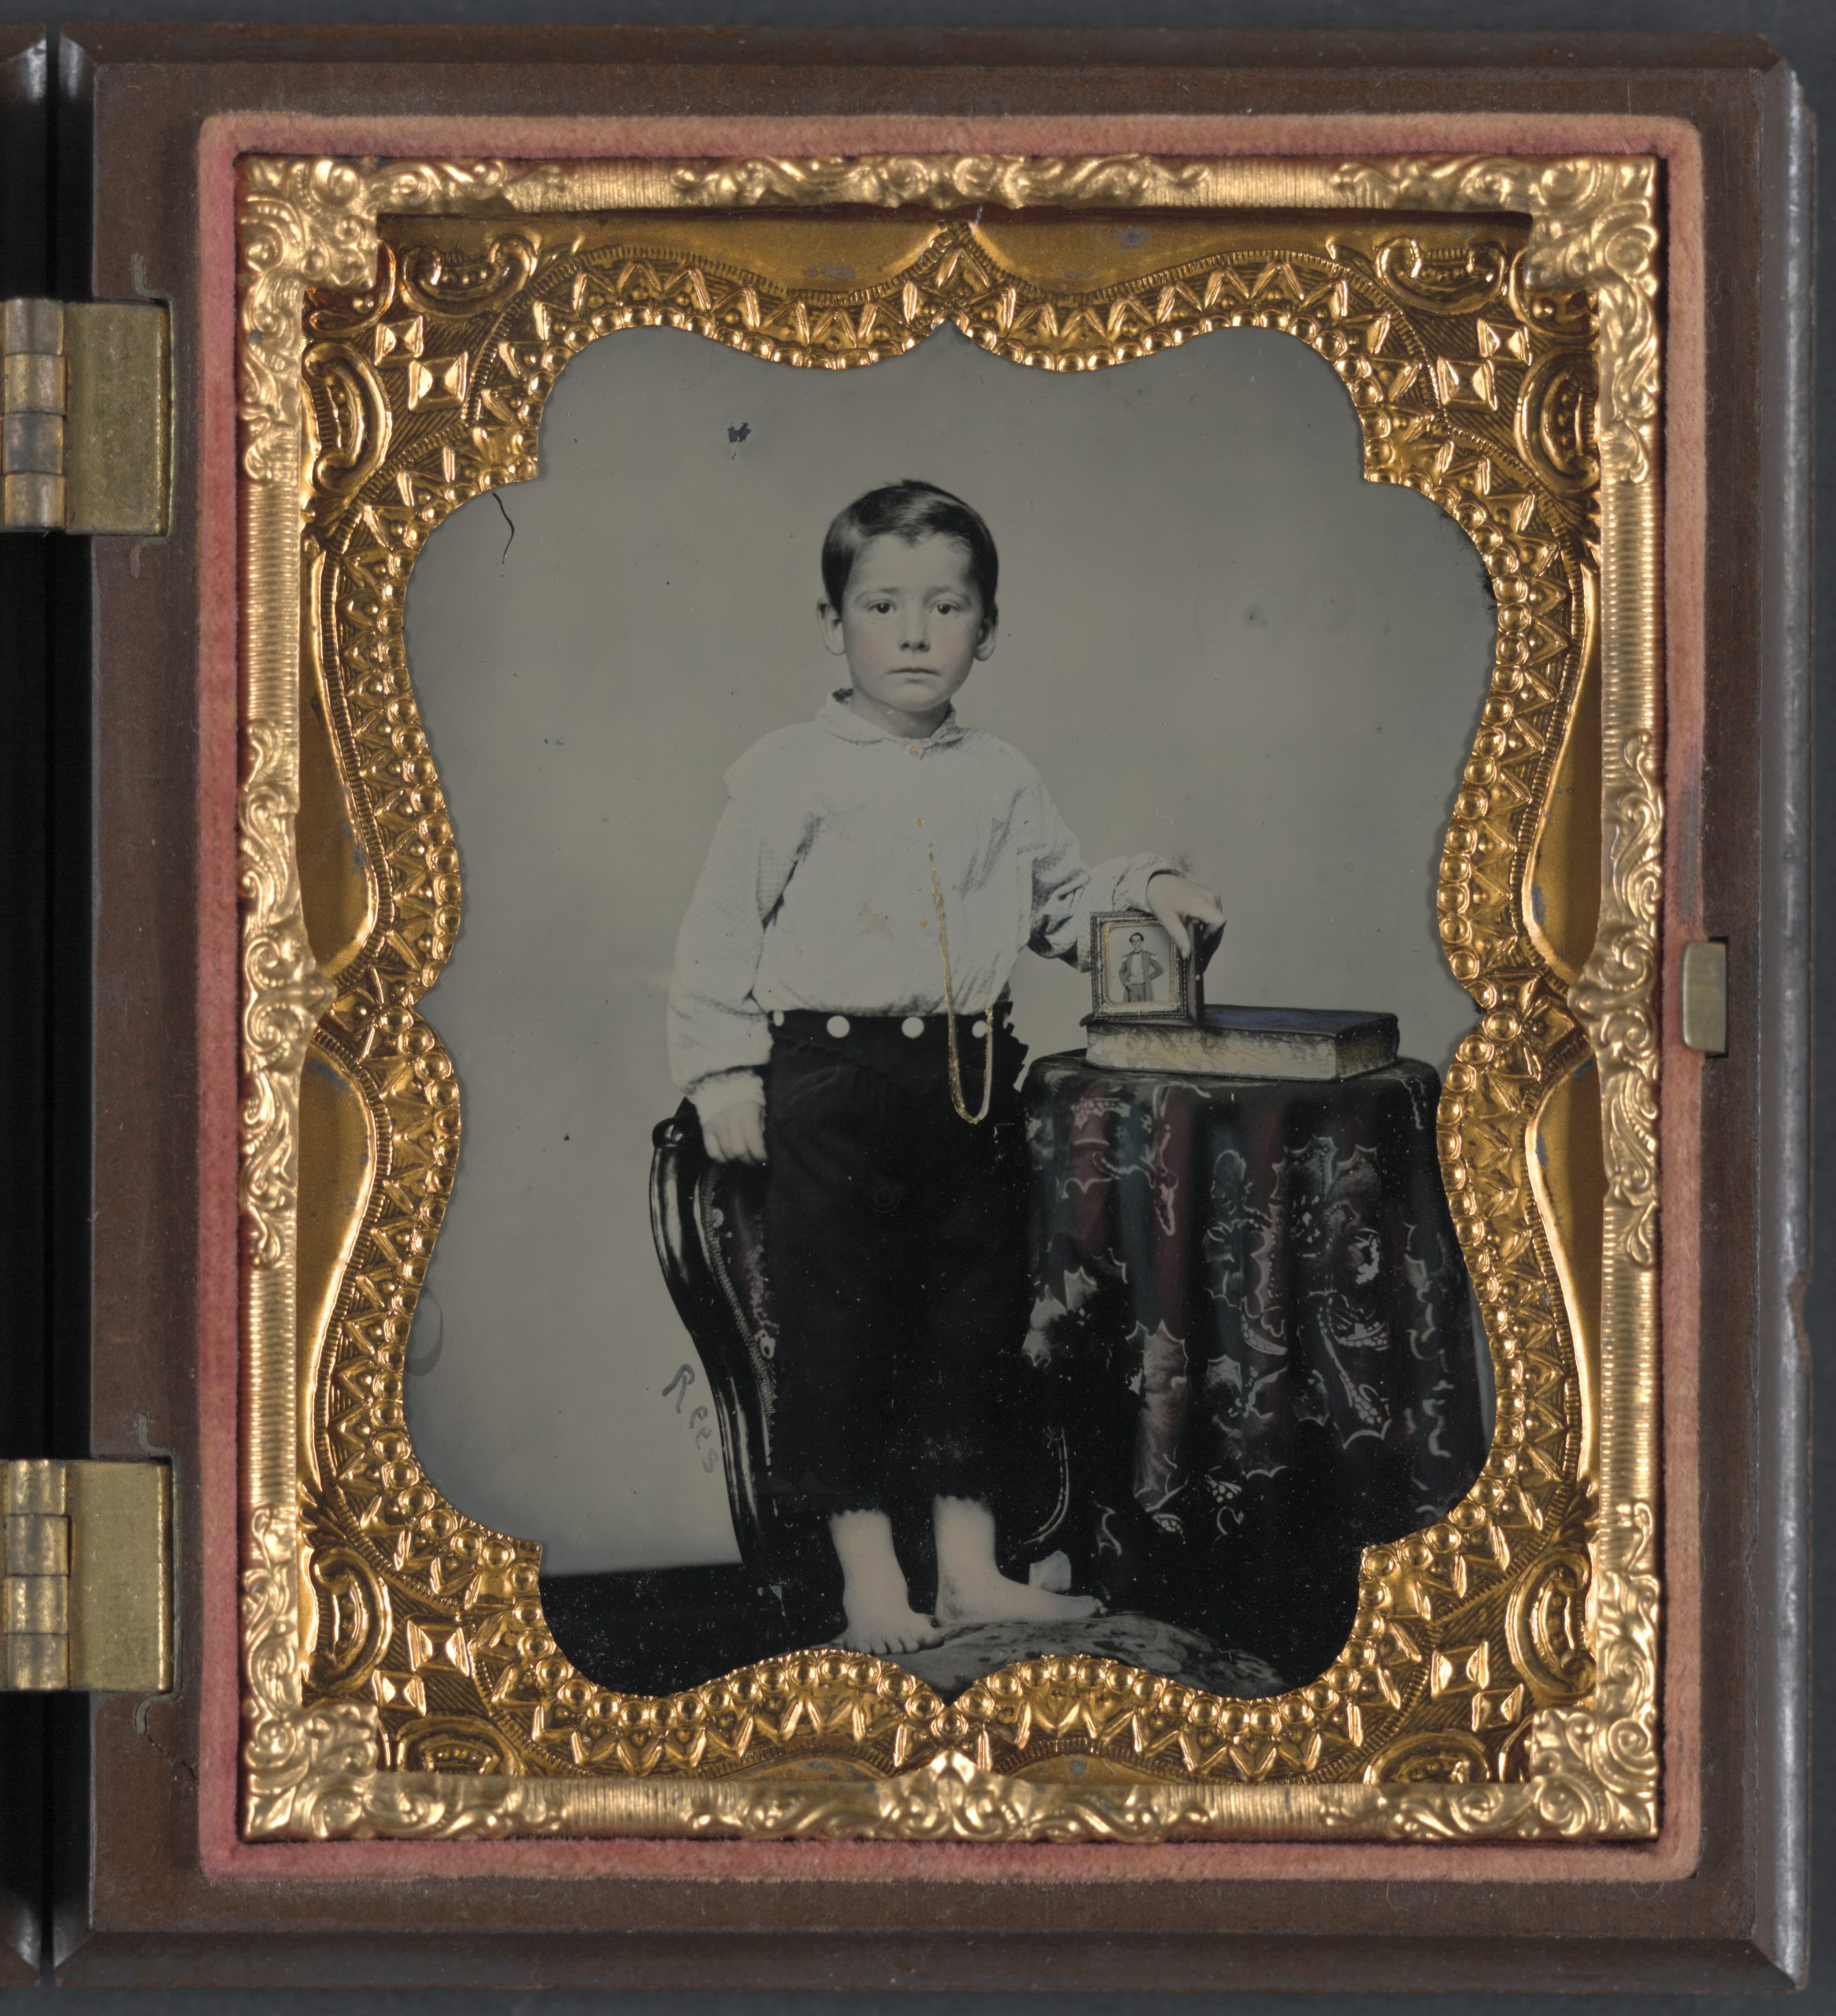 An Unidentified Boy Holds An Image of a Confederate Soldier